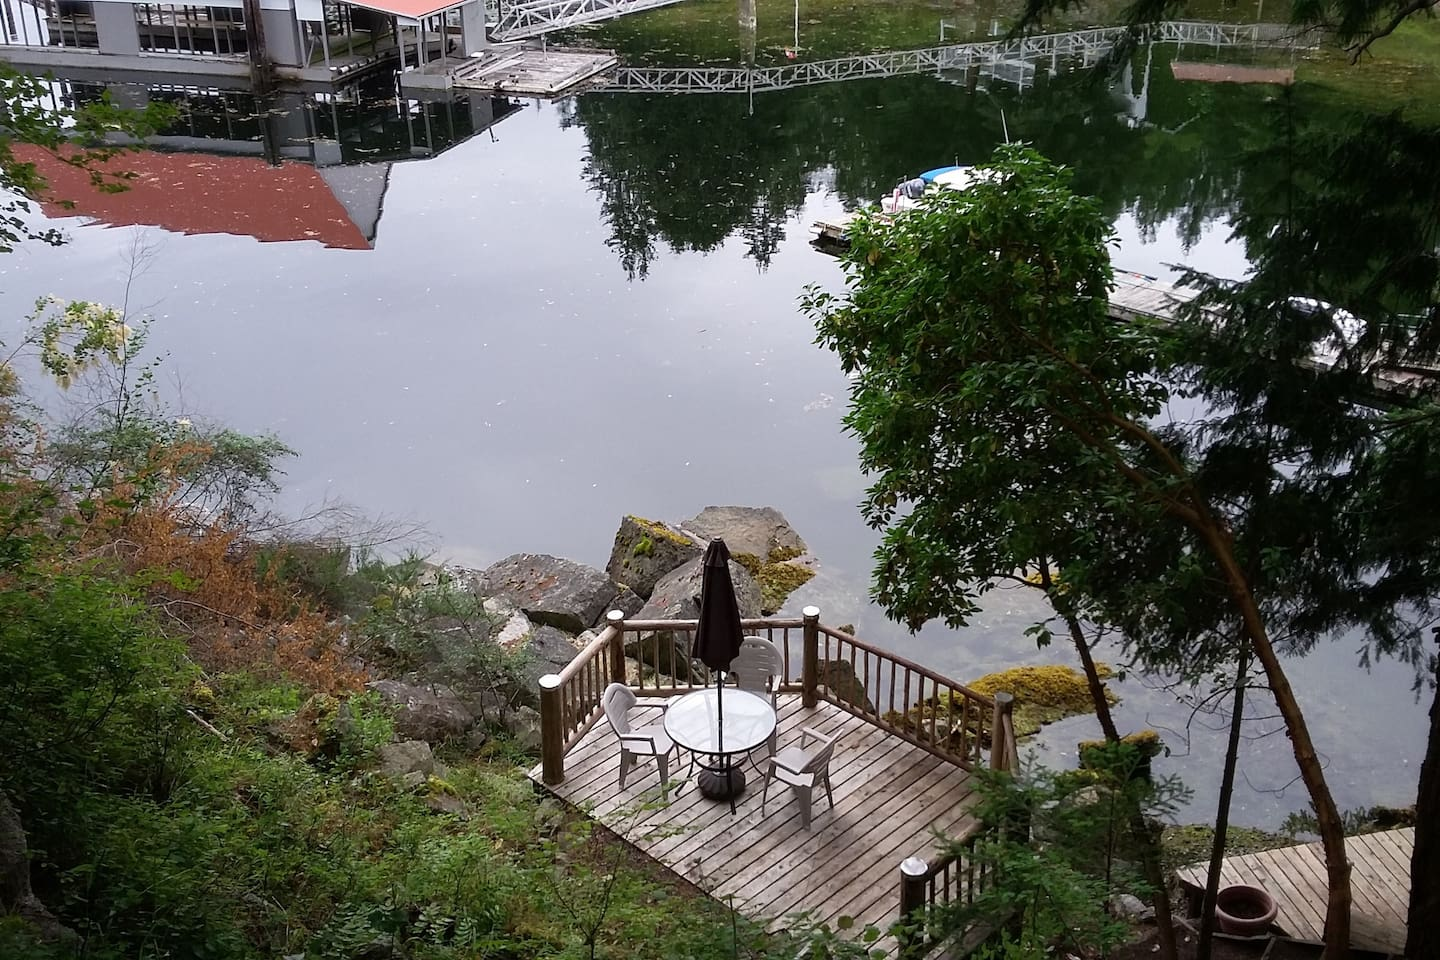 looking down from upper deck. We do not have a dock on our property.